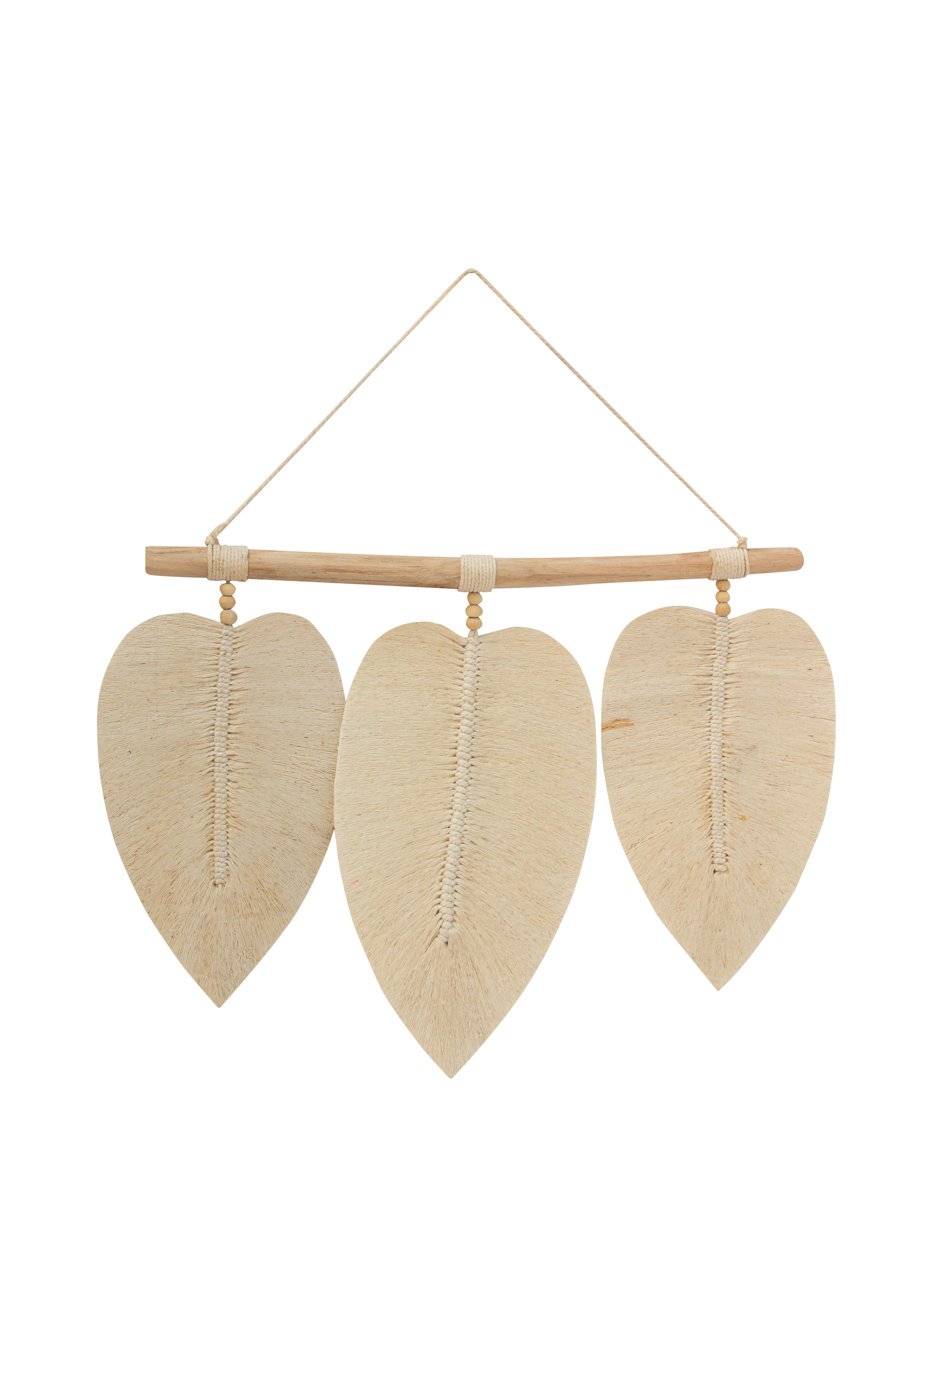 Decorative hanging cotton leaves